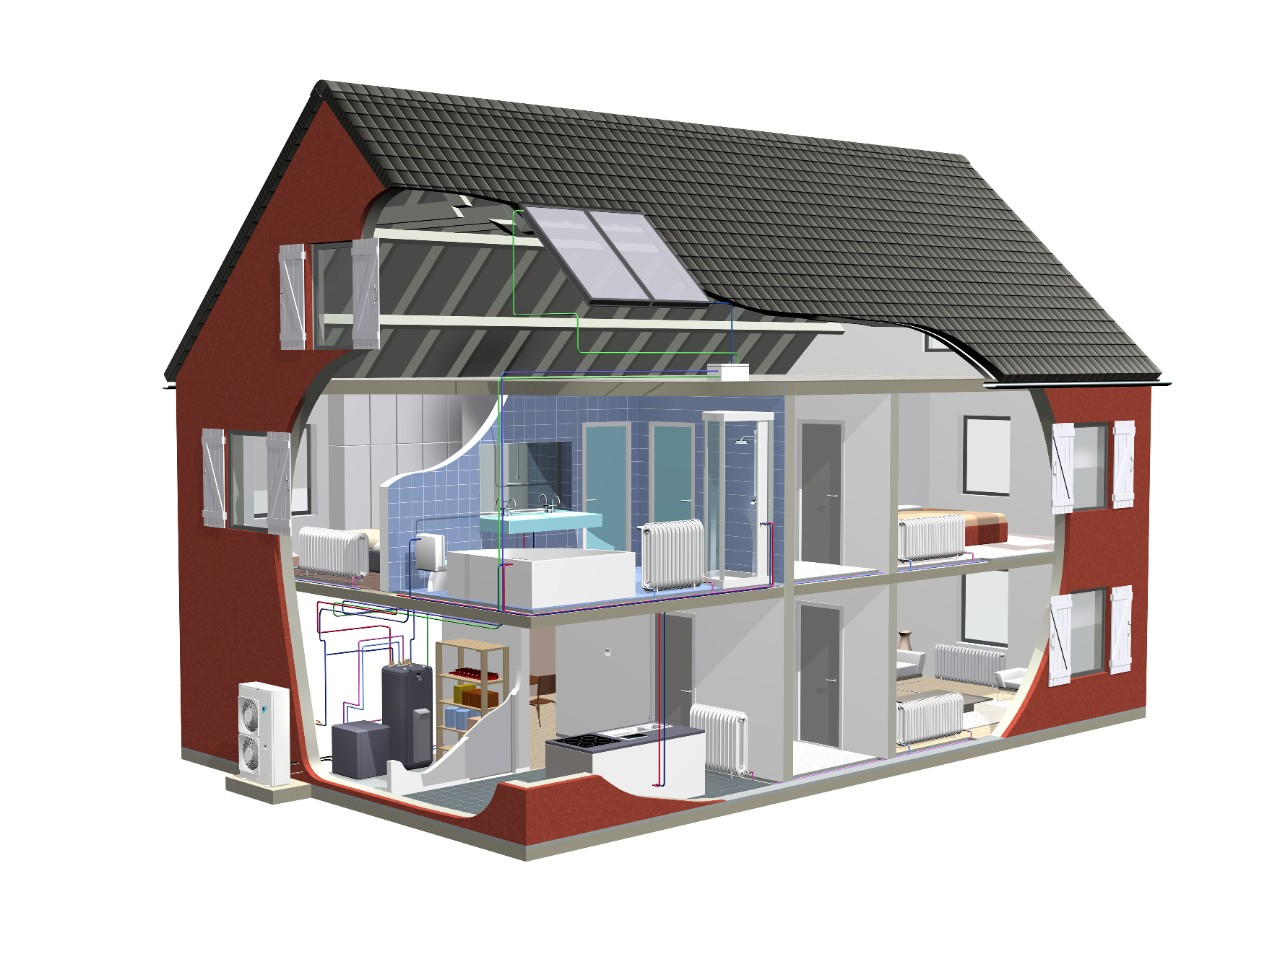 Daikin Altherma HT split with solar_Illustrations.tif